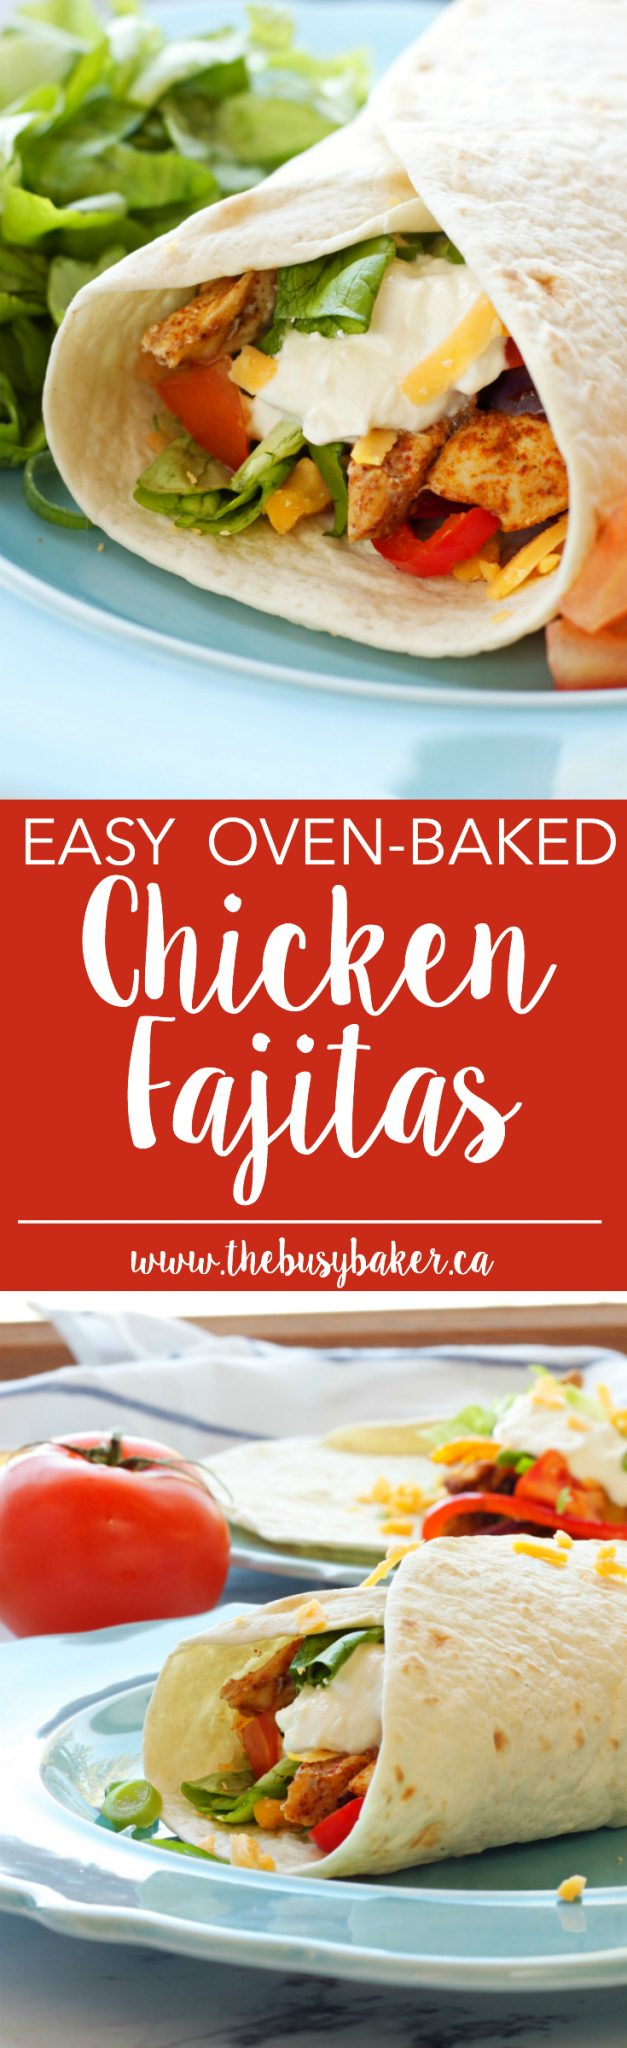 These Easy Oven Baked Chicken Fajitas are a quick and easy weeknight meal that's healthy and fresh and on the table in 30 minutes! Recipe from thebusybaker.ca via @busybakerblog